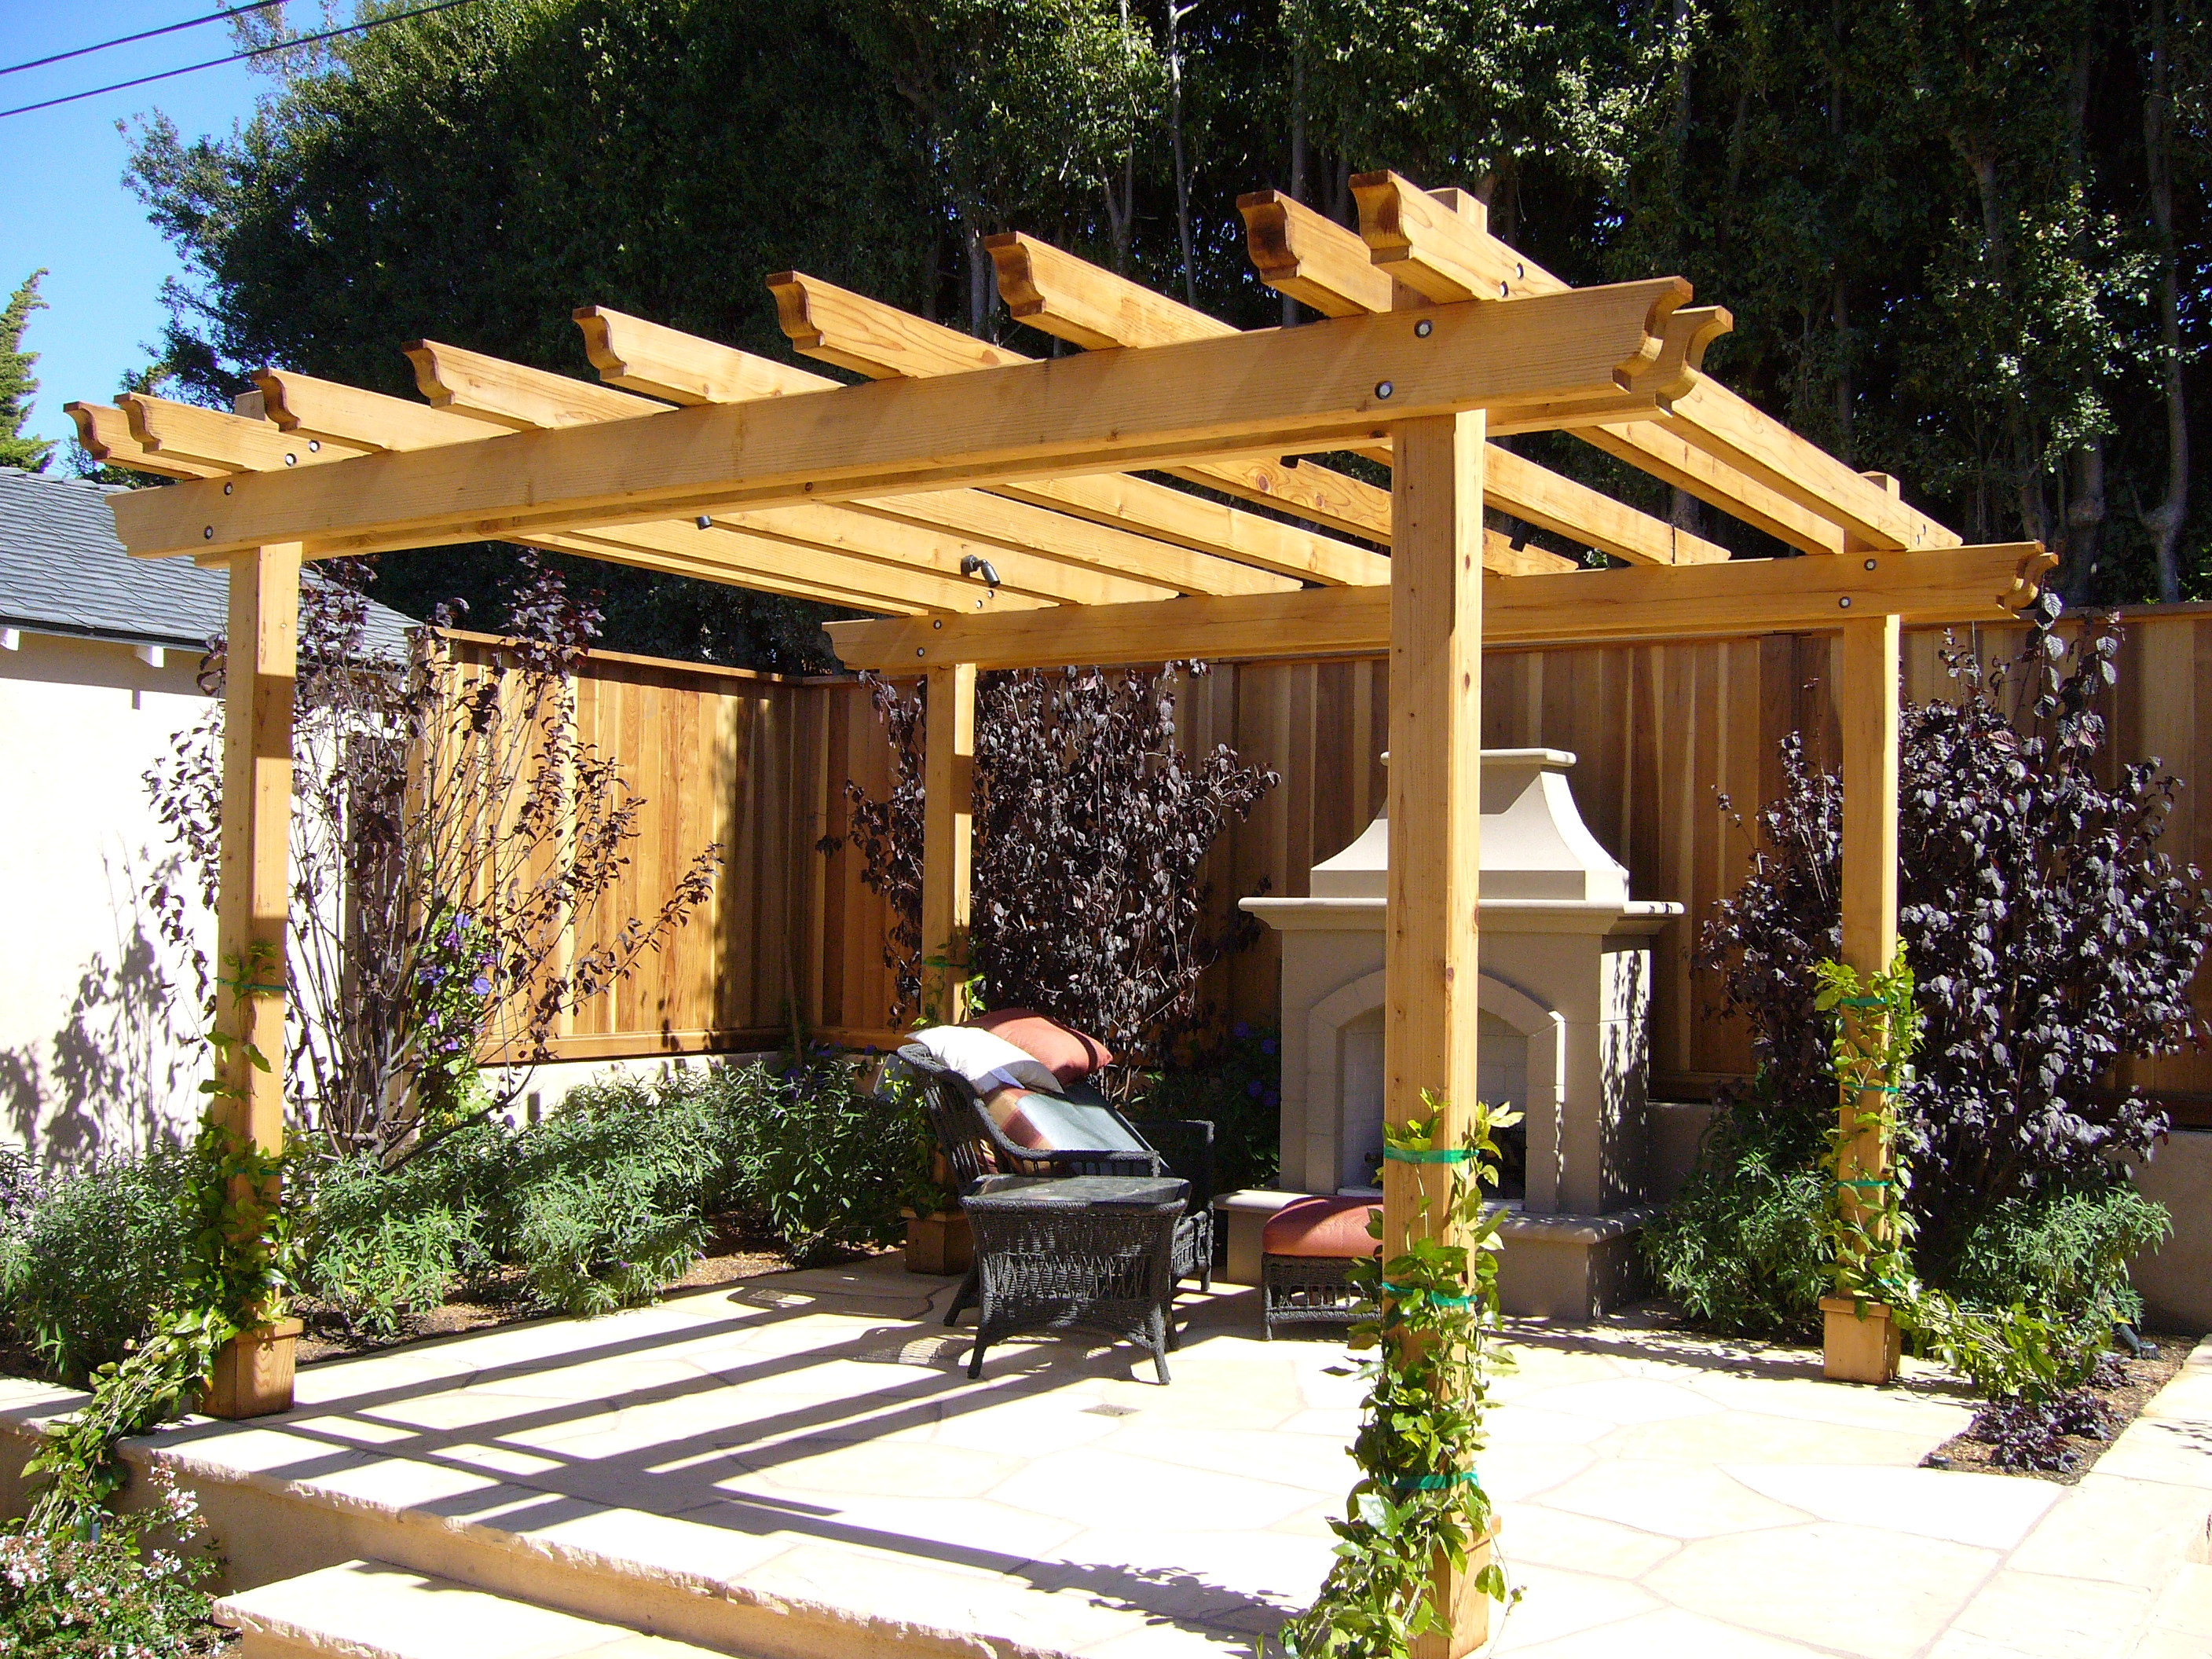 awning structure retractable awnings and shade structures. Black Bedroom Furniture Sets. Home Design Ideas